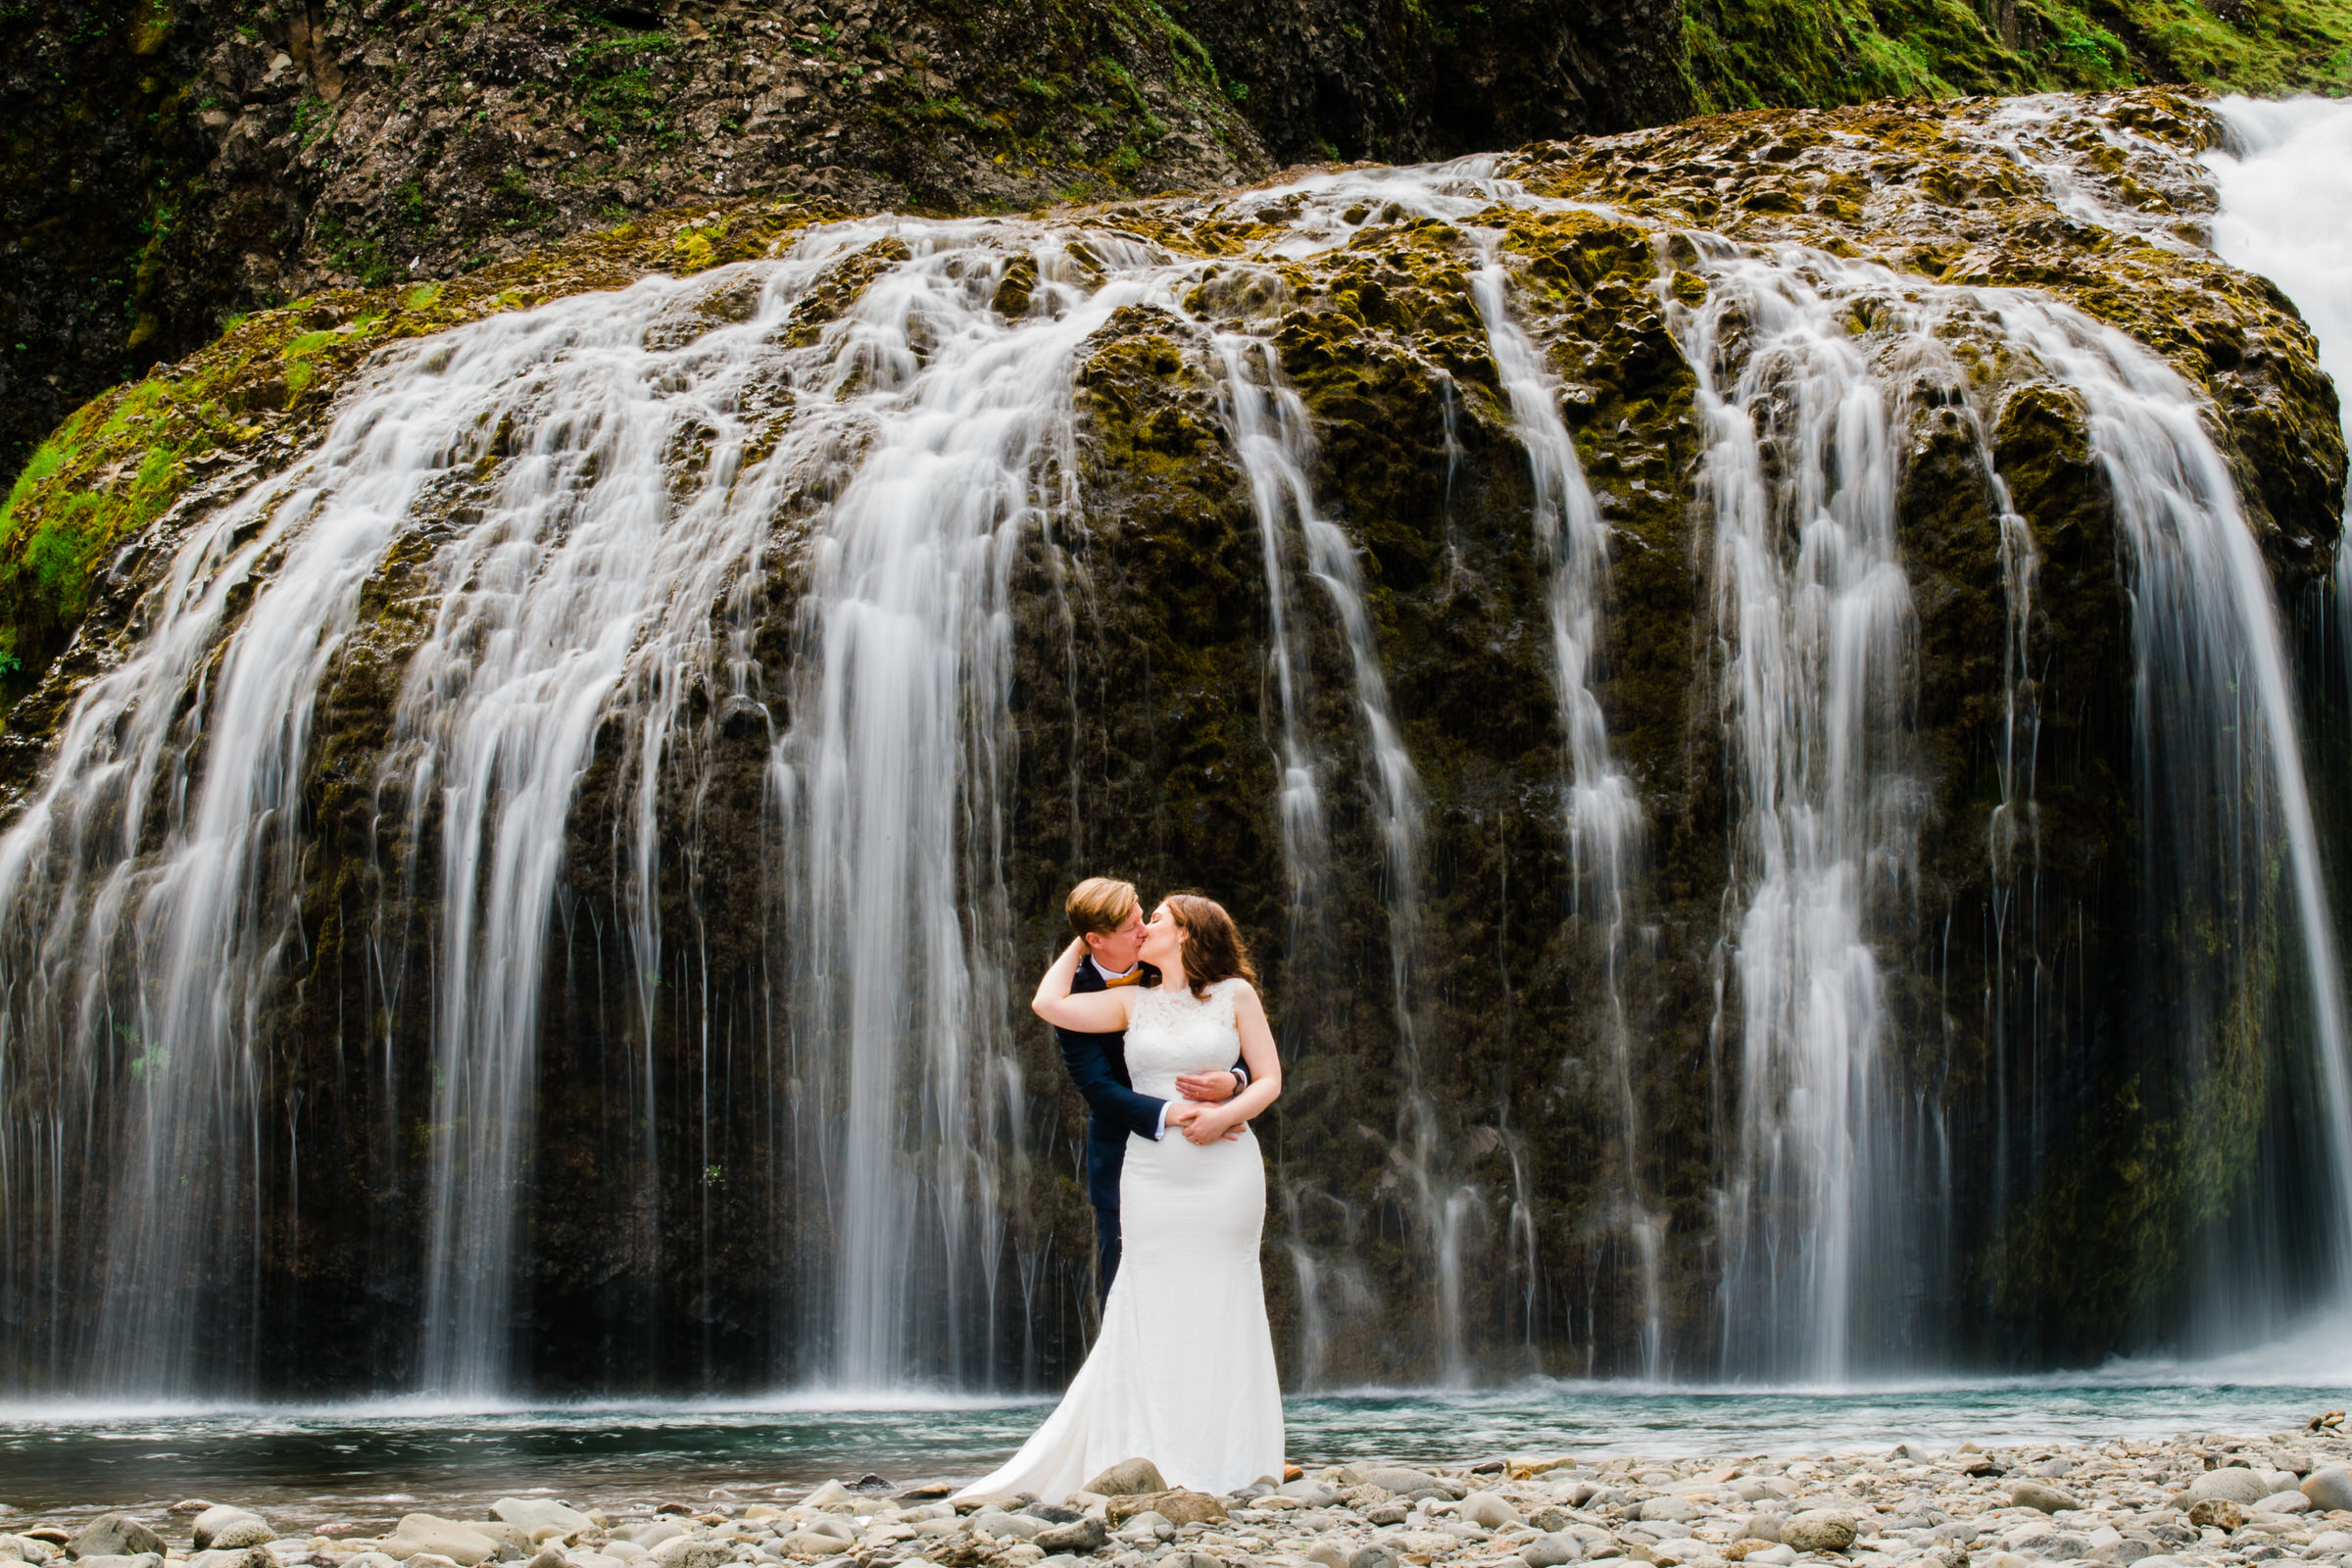 Couple embrace against waterfall in Iceland - photo by M&J Studios